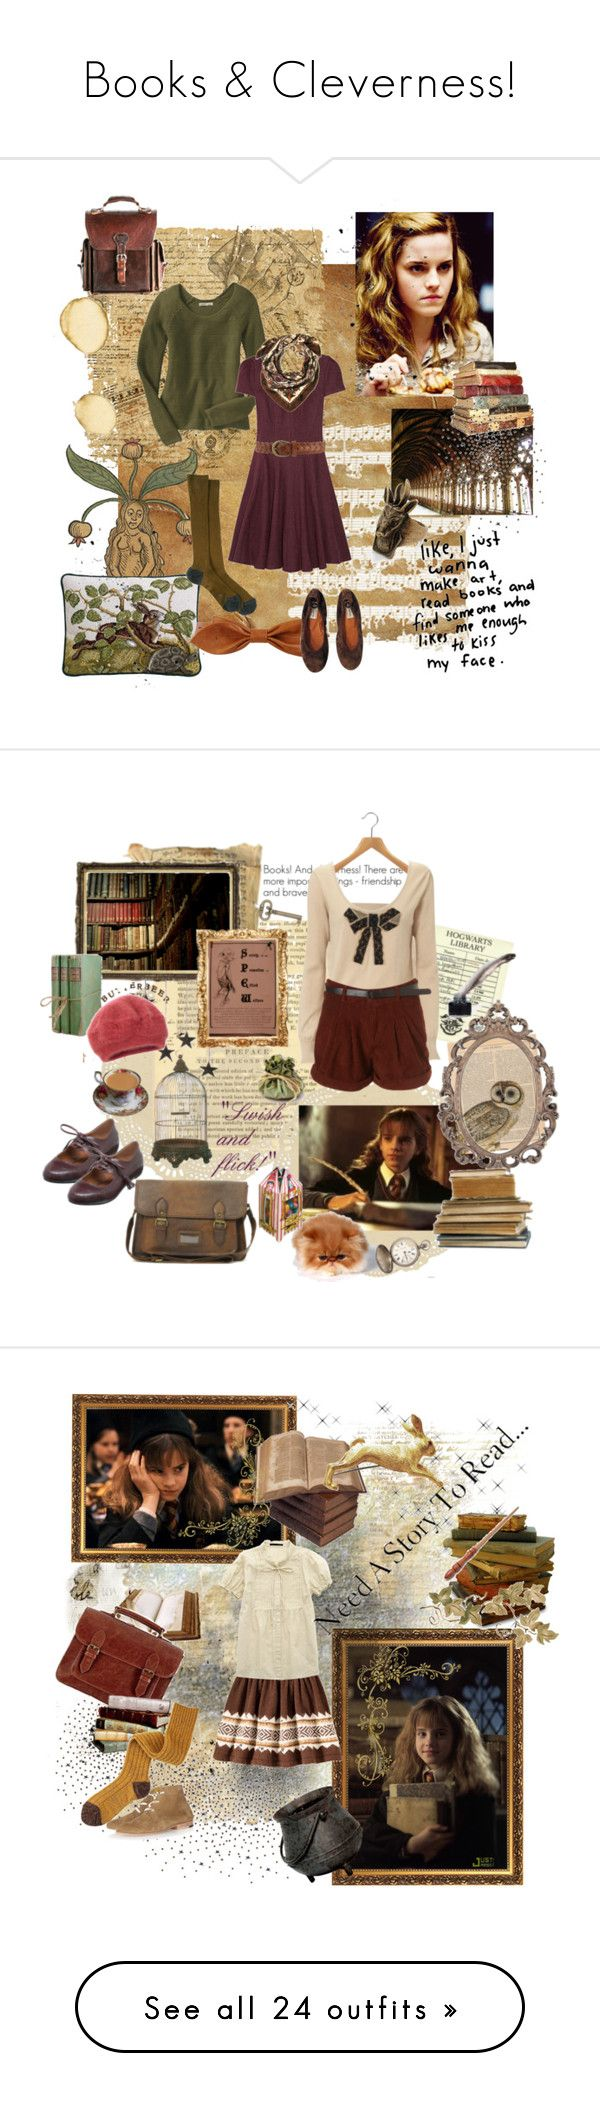 """Books & Cleverness!"" by missaquarius ❤ liked on Polyvore featuring Retrò, Dorothy Perkins, Old Navy, TIBI, ReLuxe, Forever 21, Maria La Rosa, Lanvin, vintage hermione granger harry potter hogwarts university leraning reading library poetry dreaming s and Warehouse"